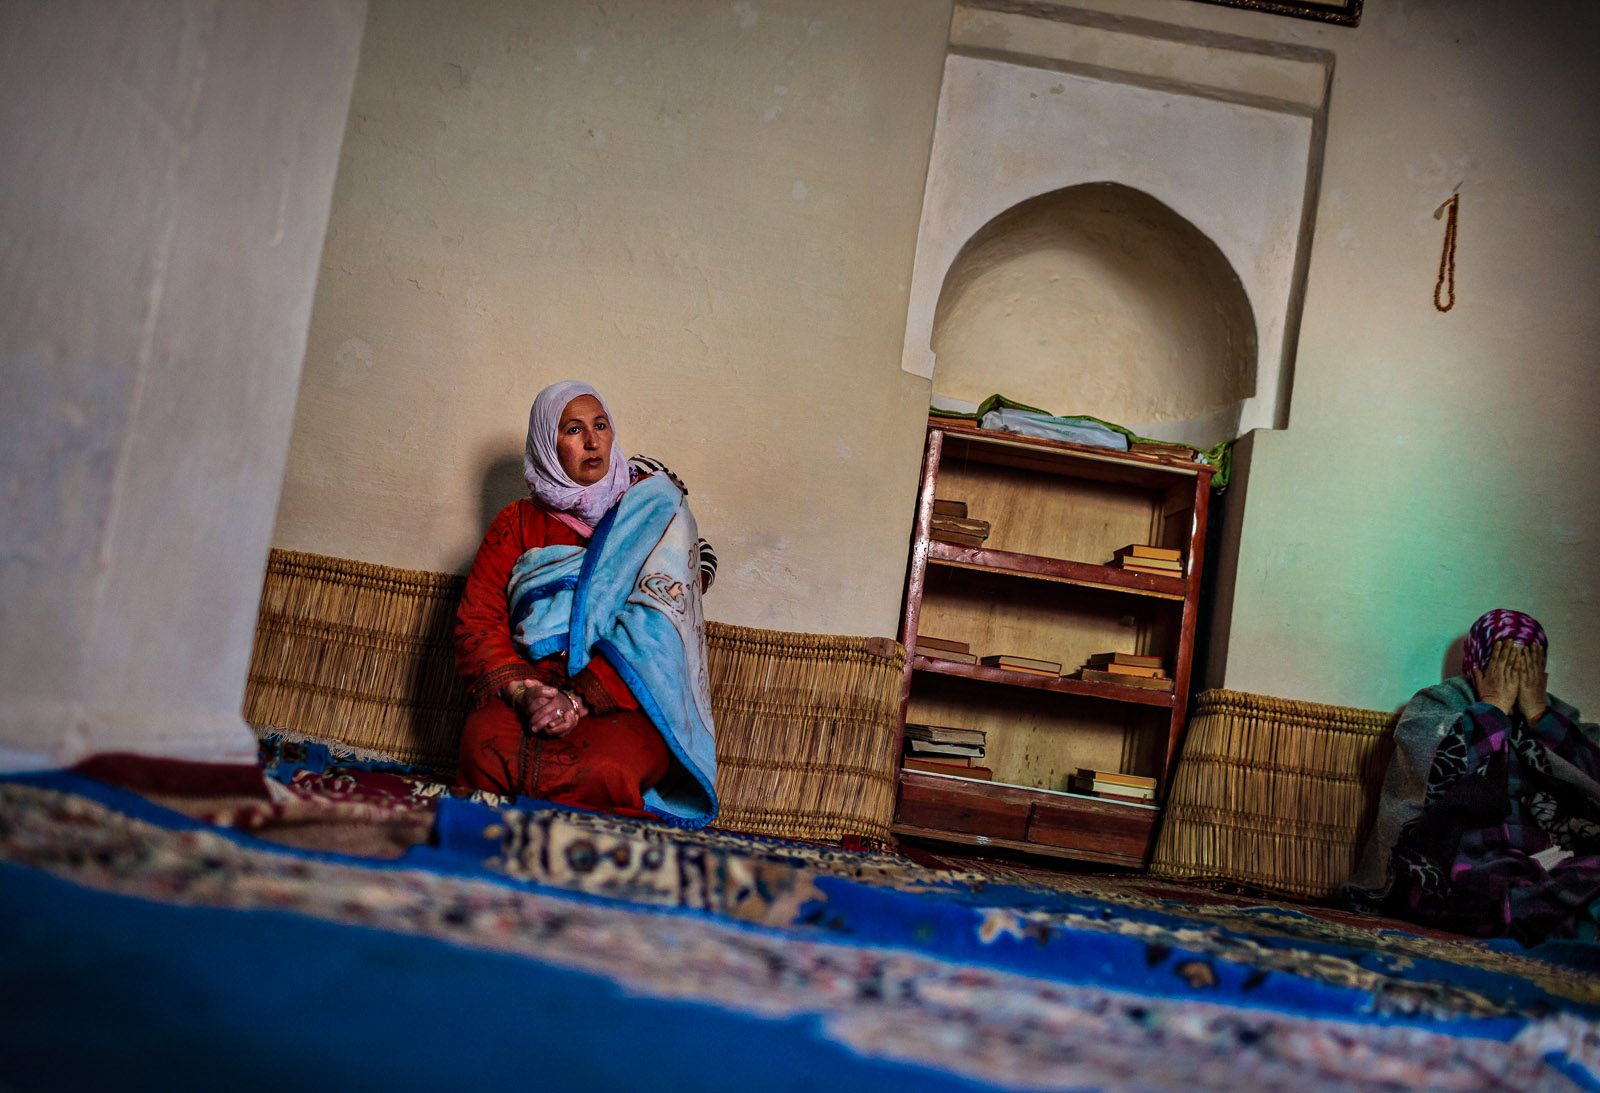 Prayer room, MoroccoPhotograph by Jesse Neider